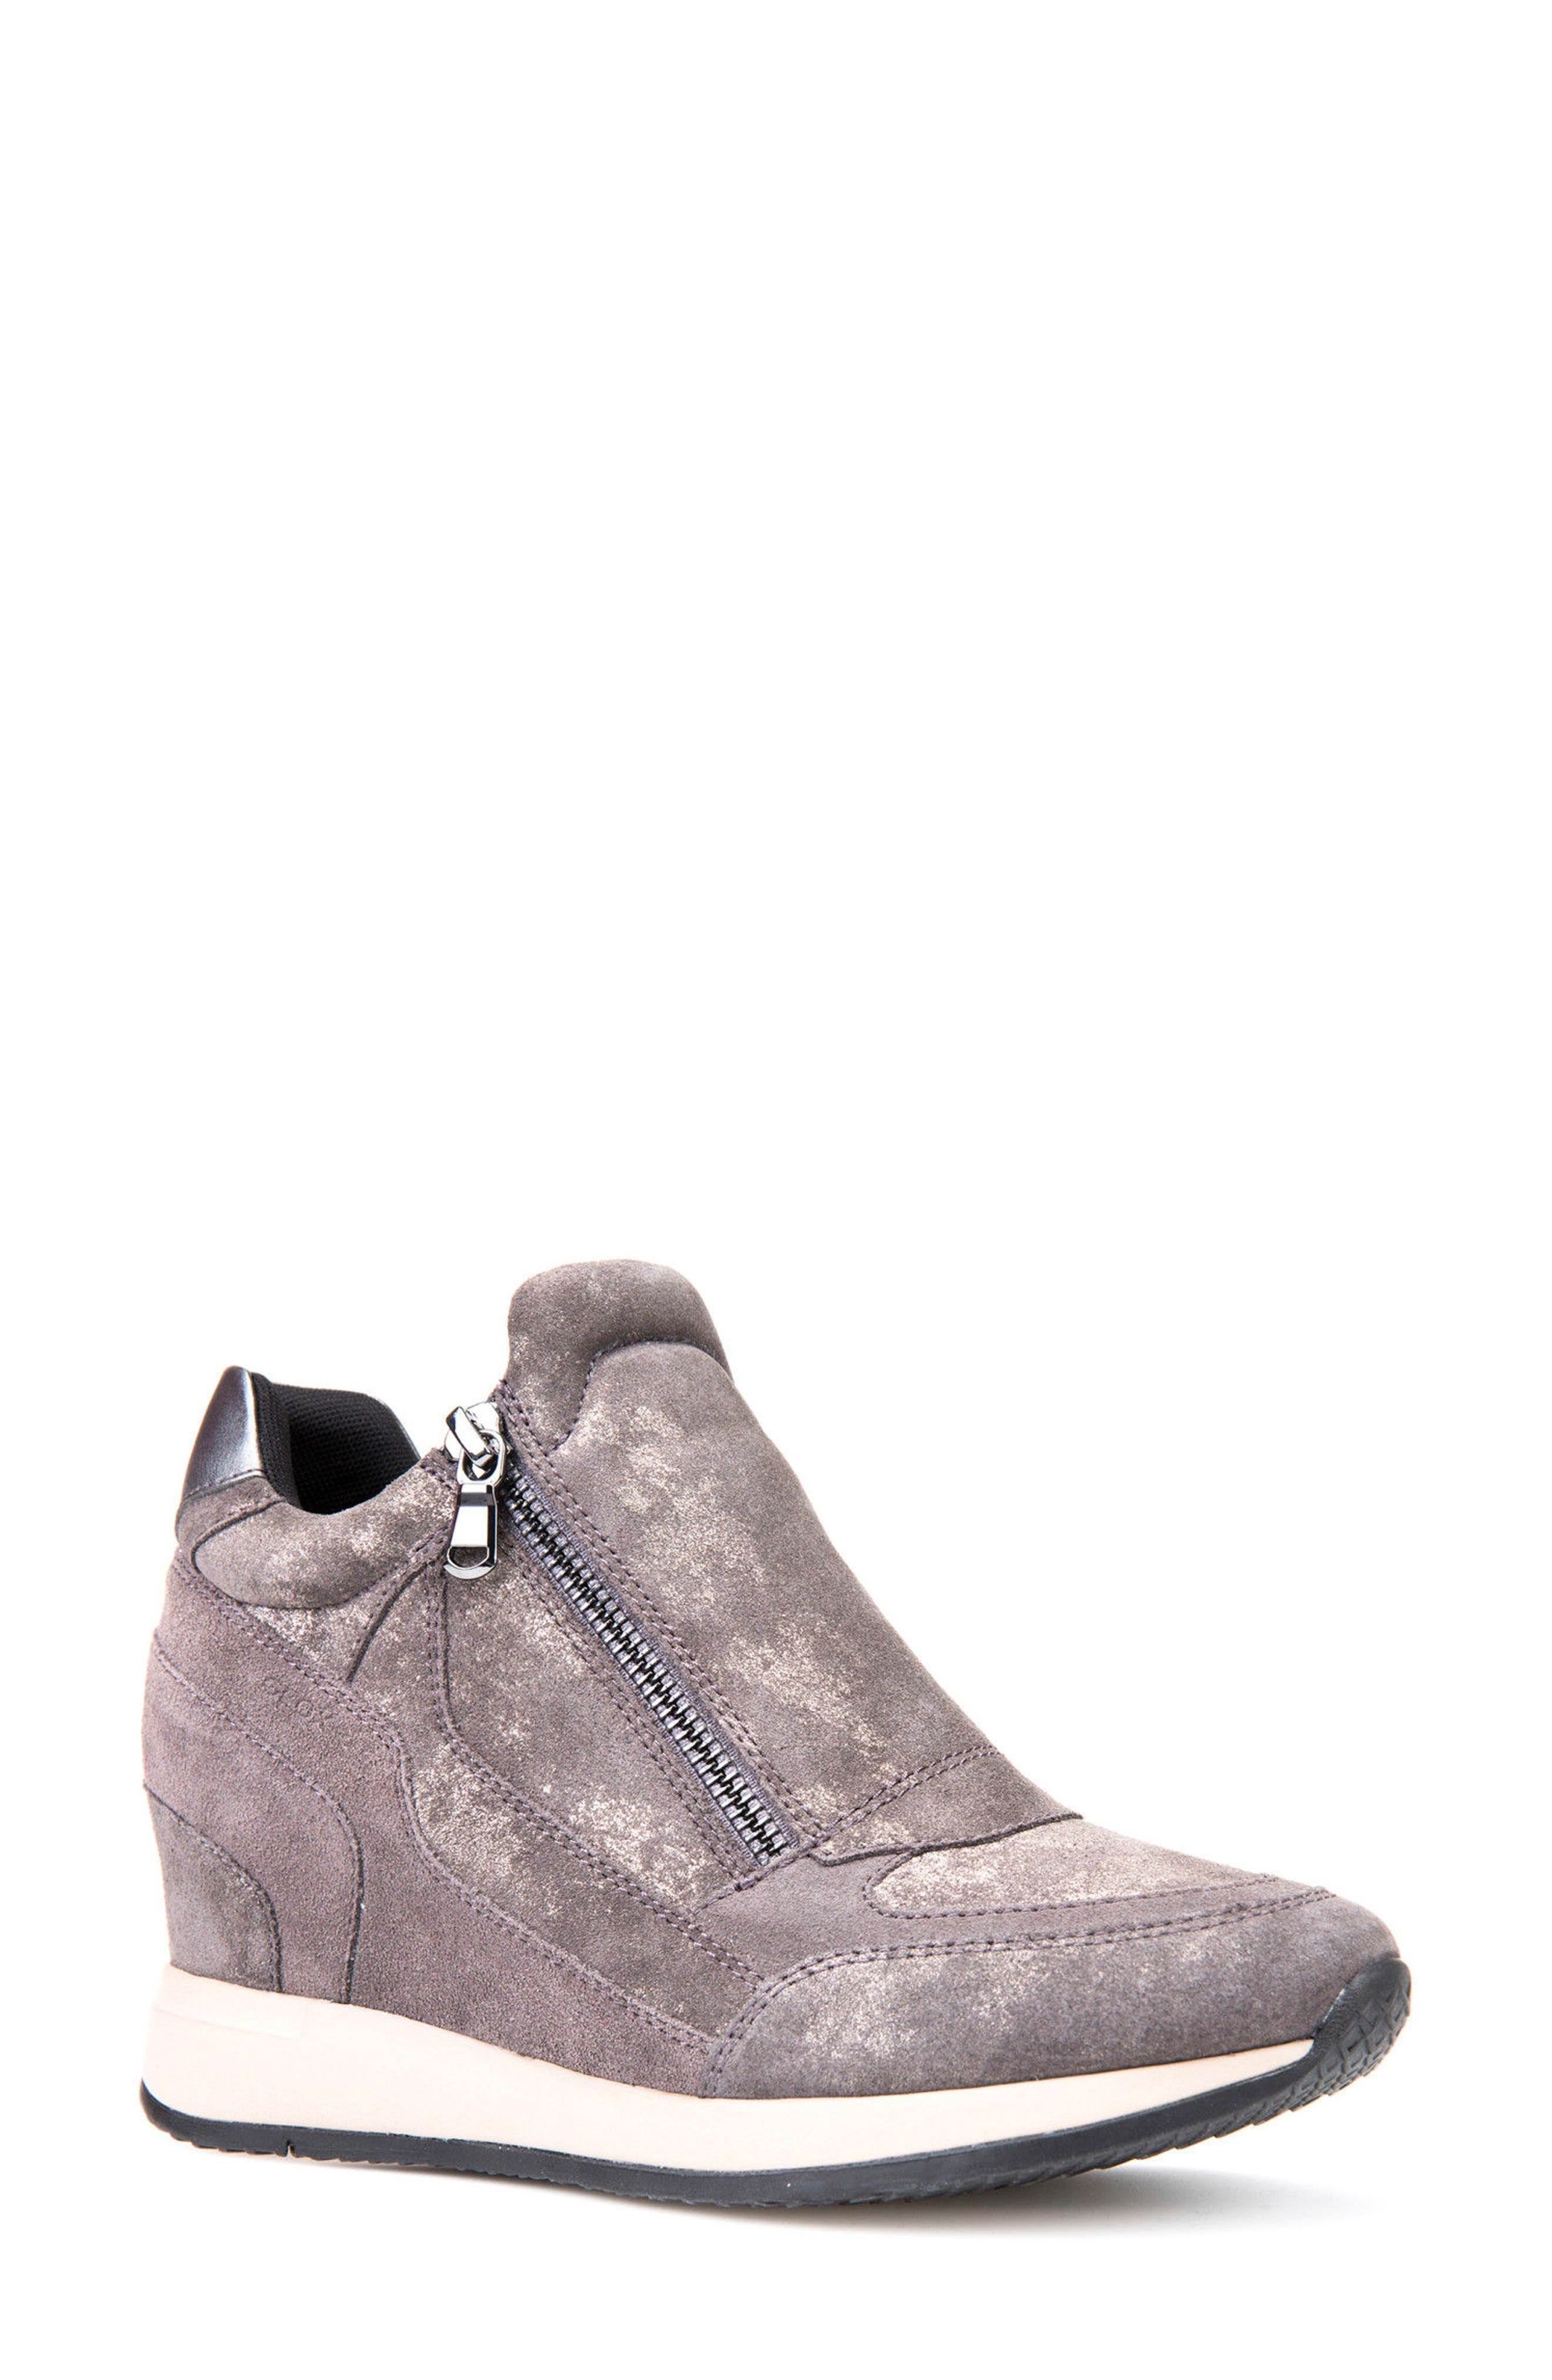 Nydame Wedge Sneaker,                             Main thumbnail 1, color,                             Dark Grey Leather